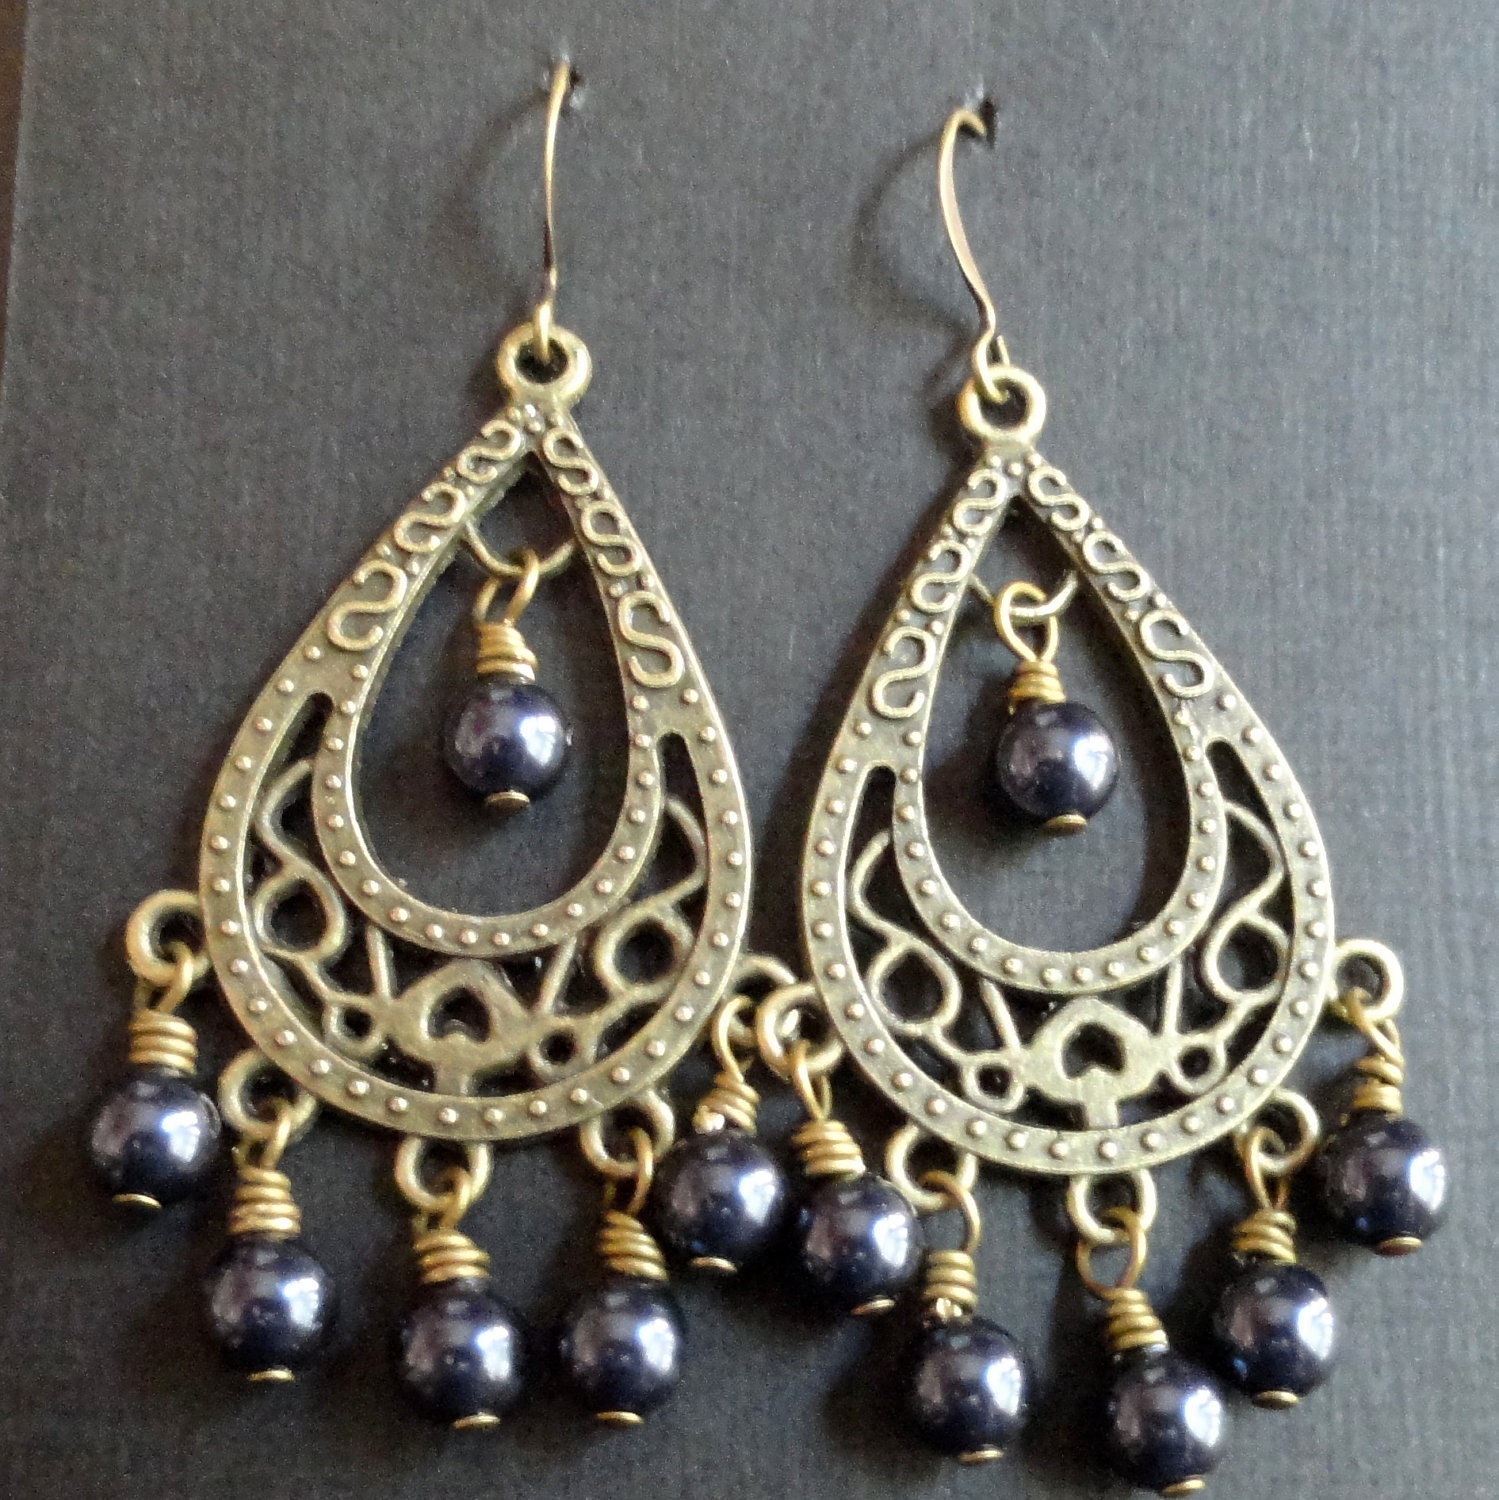 Wire Wrapped Earrings Blue Pearl and Antique Brass, Large Teardrop Chandelier Earrings